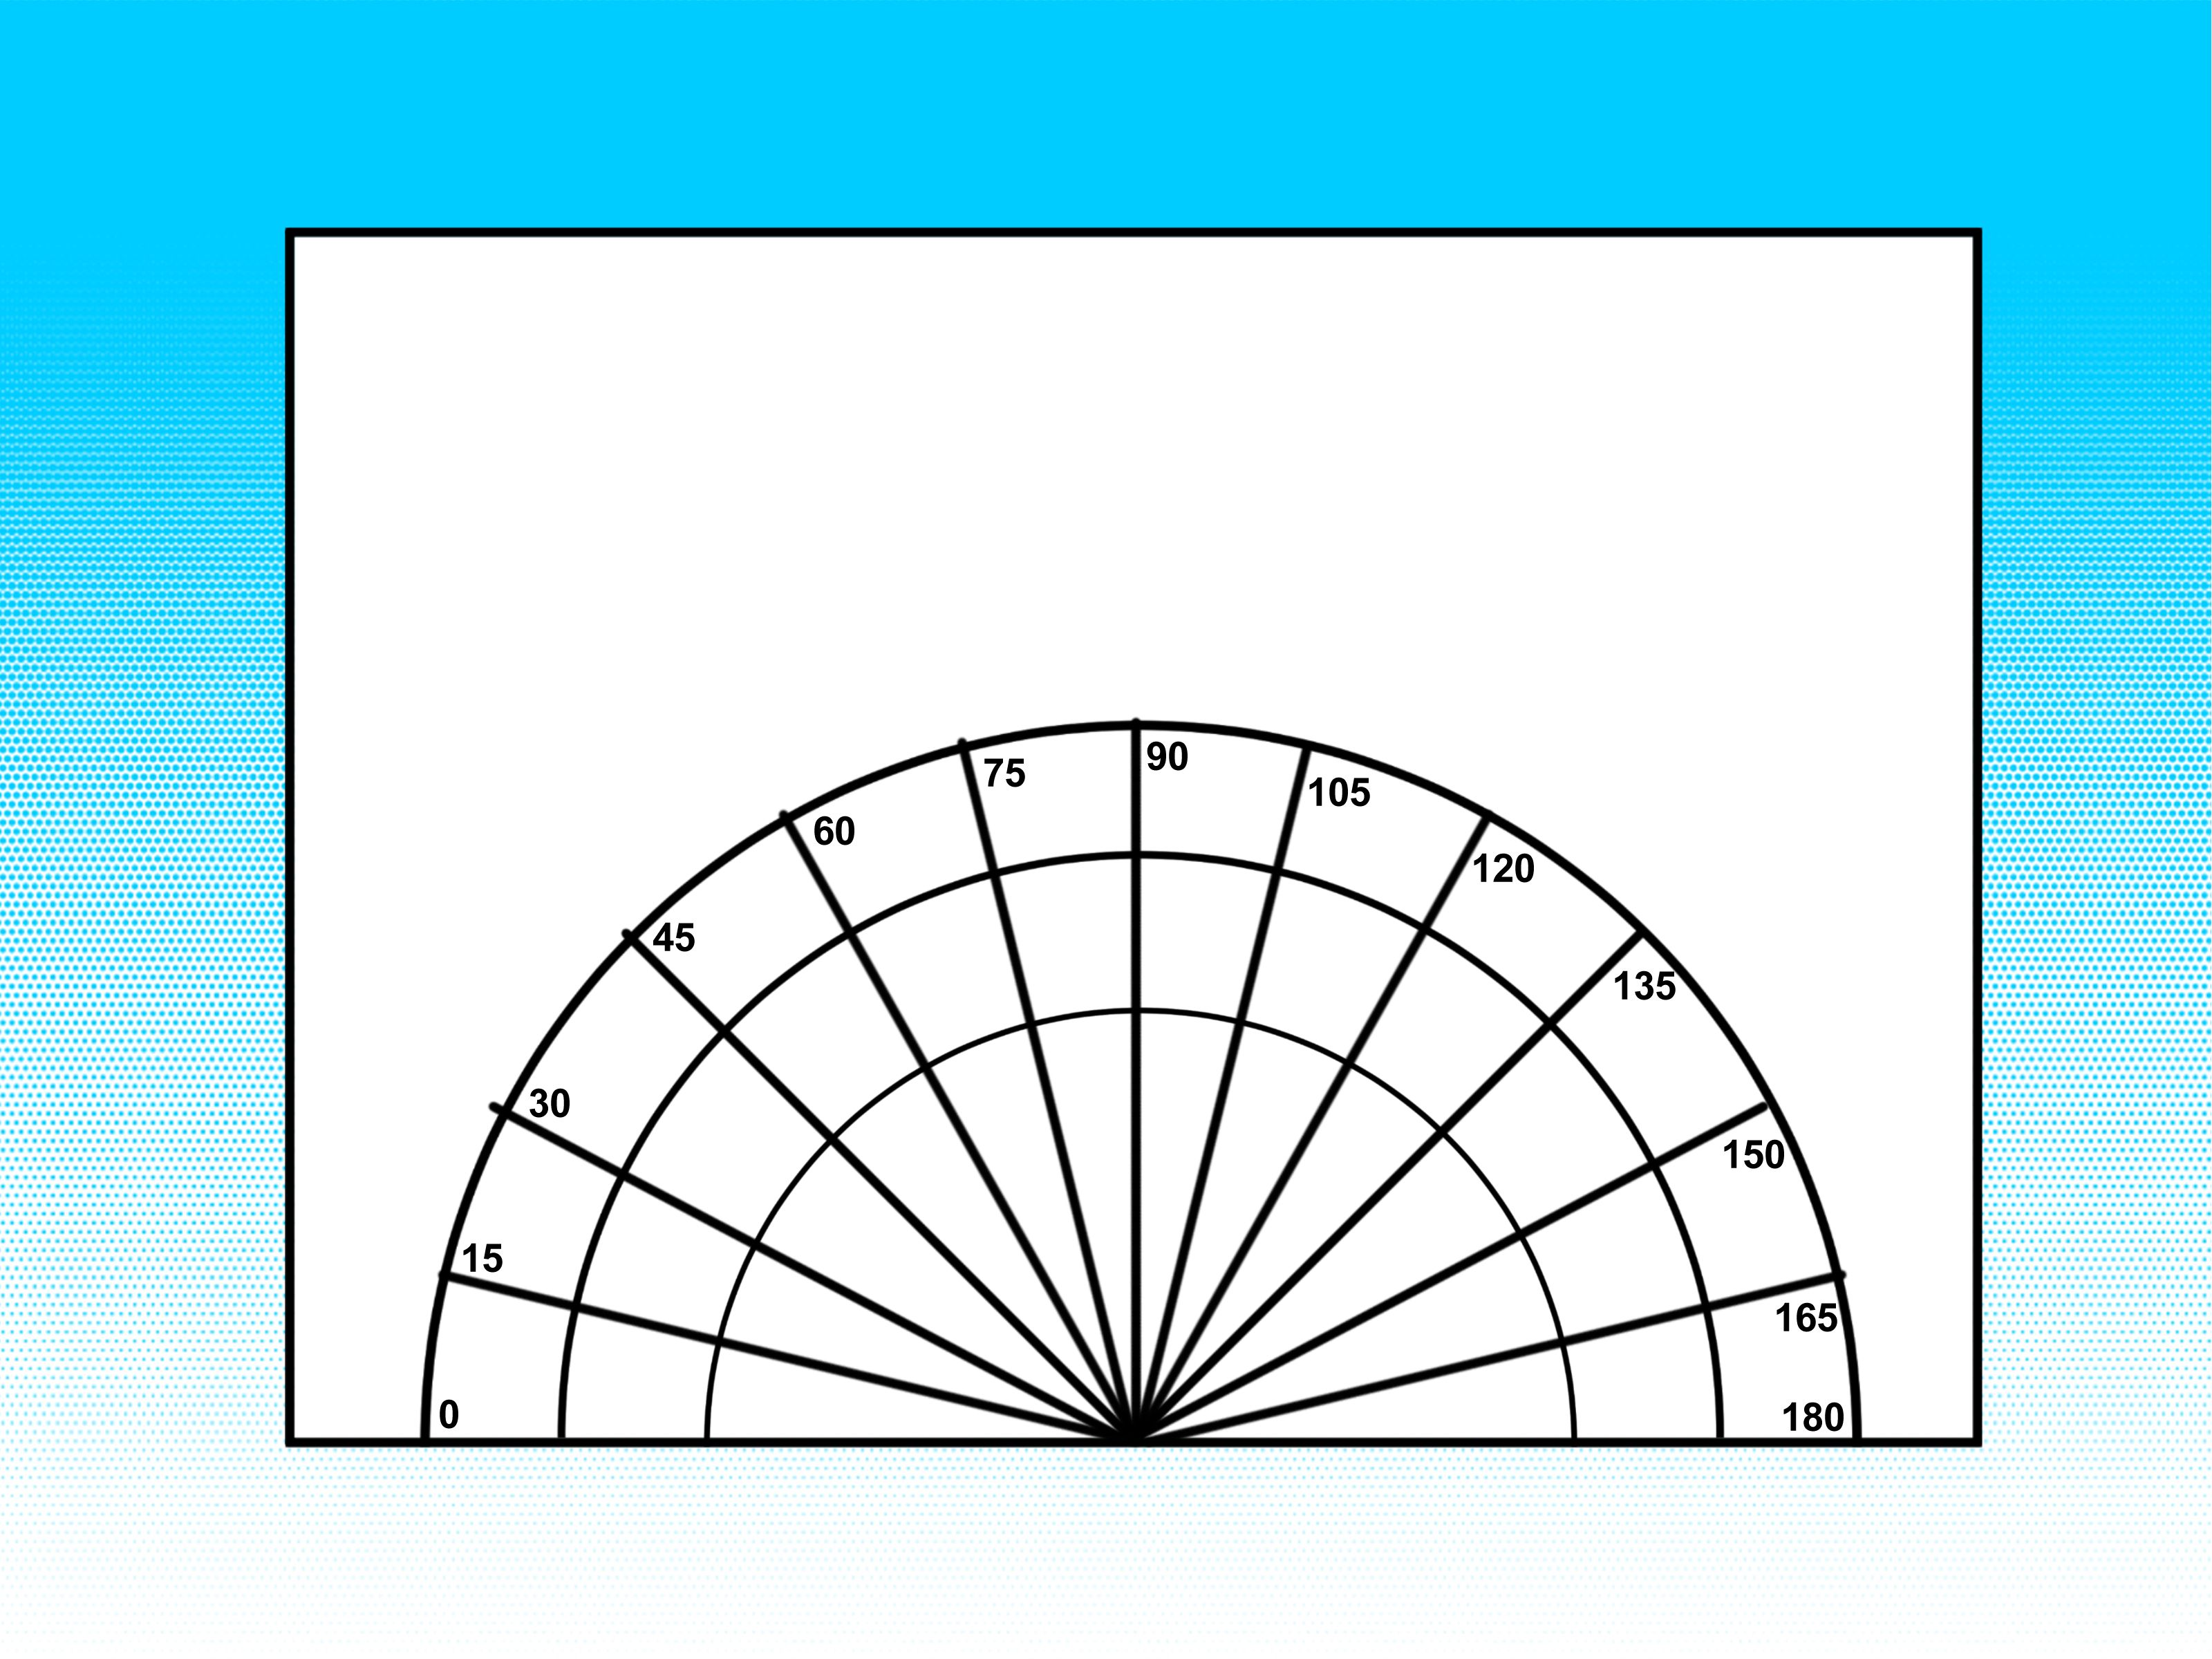 How To Make Your Own Paper Protractors Step By Step Guide With A Lot Of Visuals